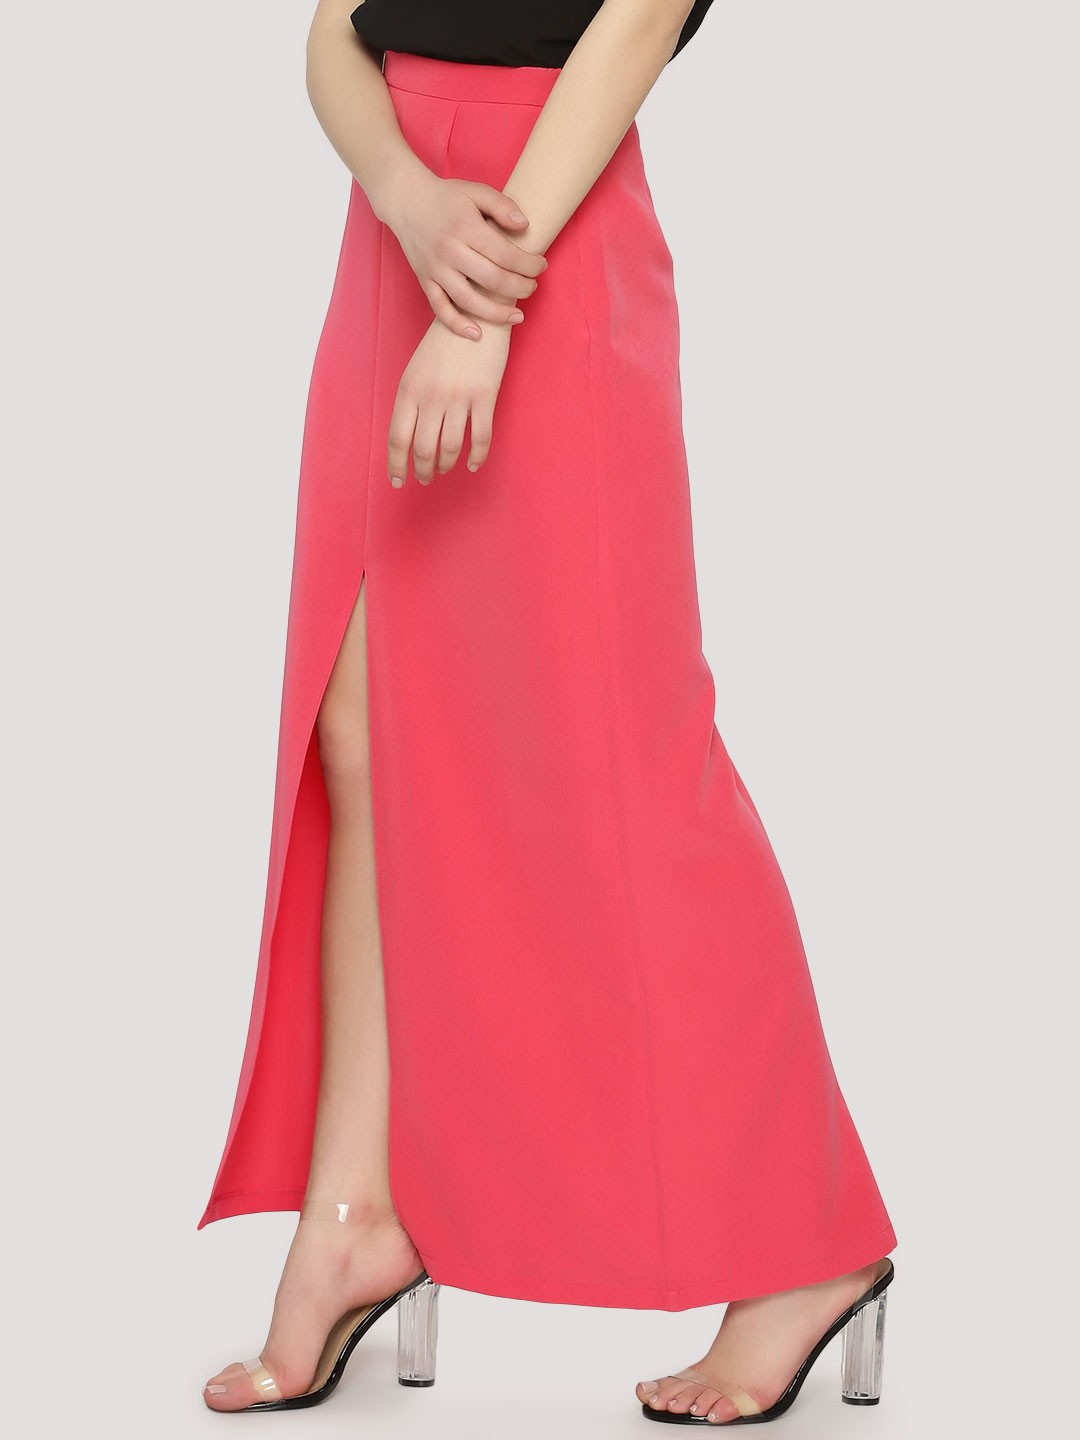 Long Skirt - Online Long Skirt Shopping in India at Koovs